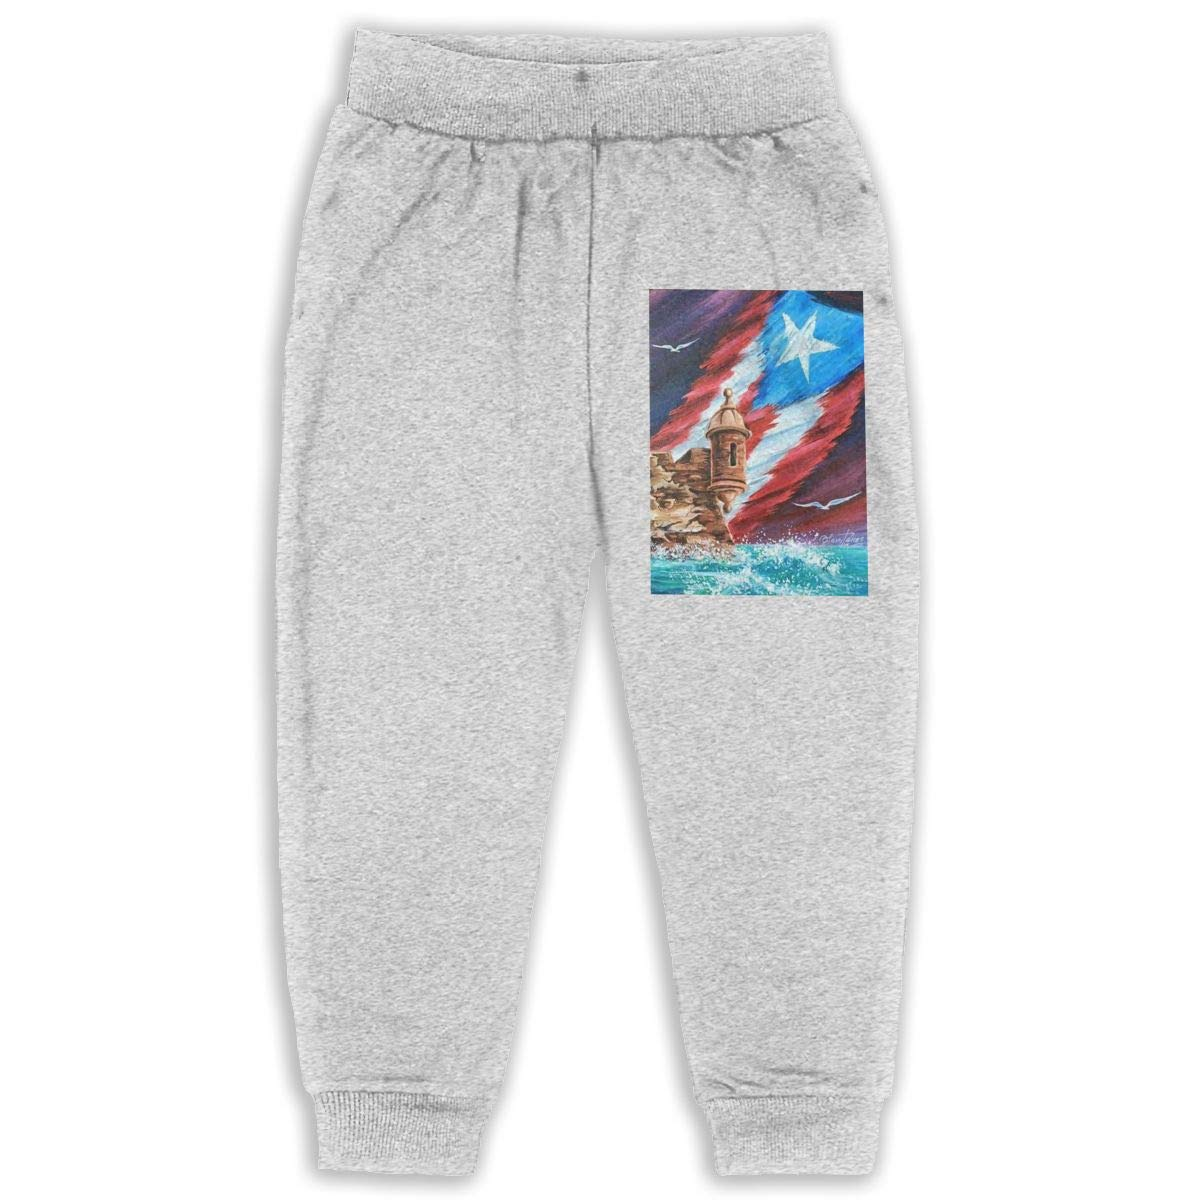 JOAPNWJ Children Cartoon Cotton Sweatpants Sport Jogger Elastic Pants